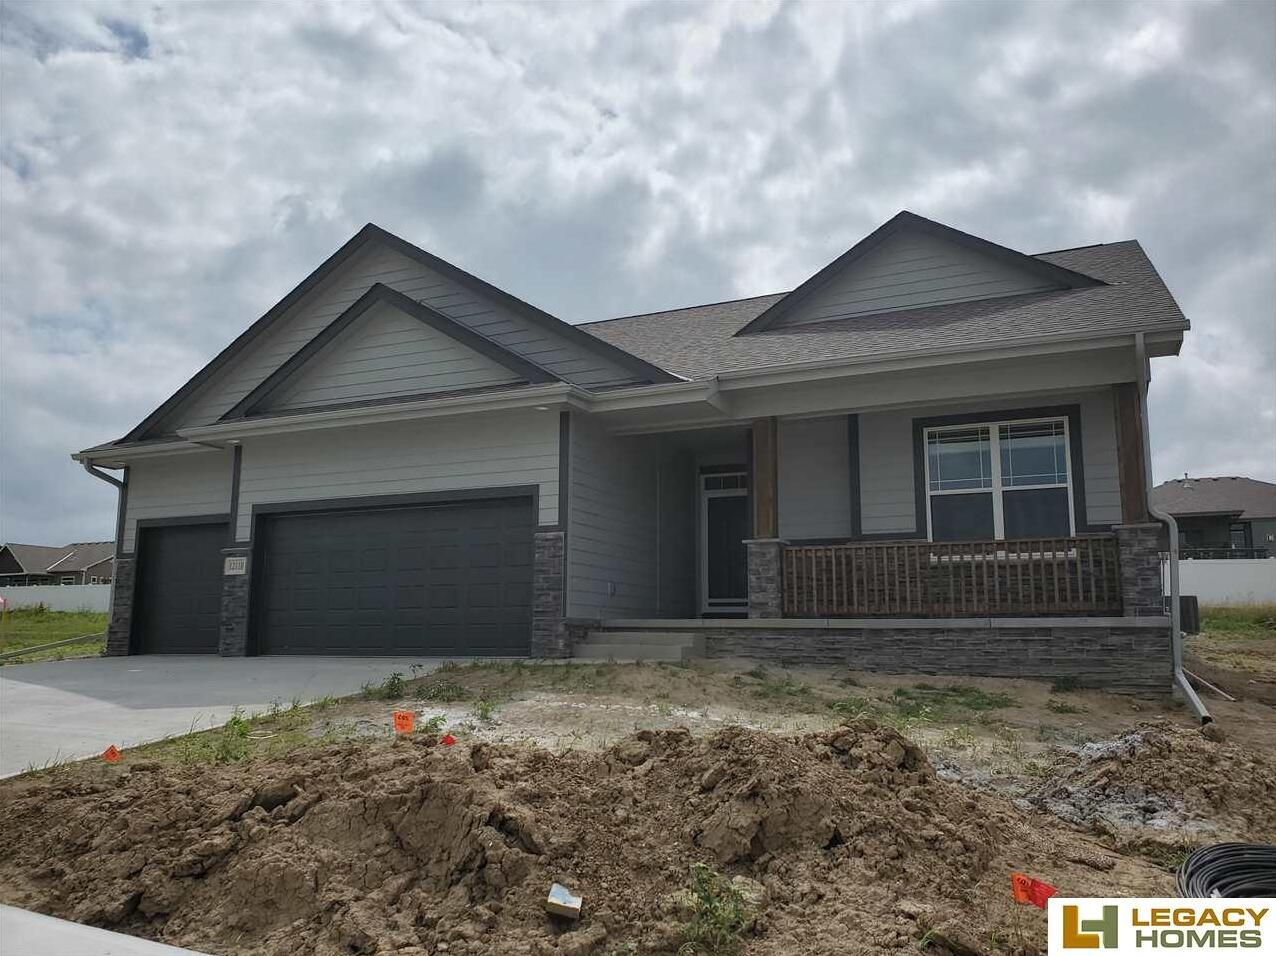 Photo of 12110 S 209th Avenue Gretna NE 68028